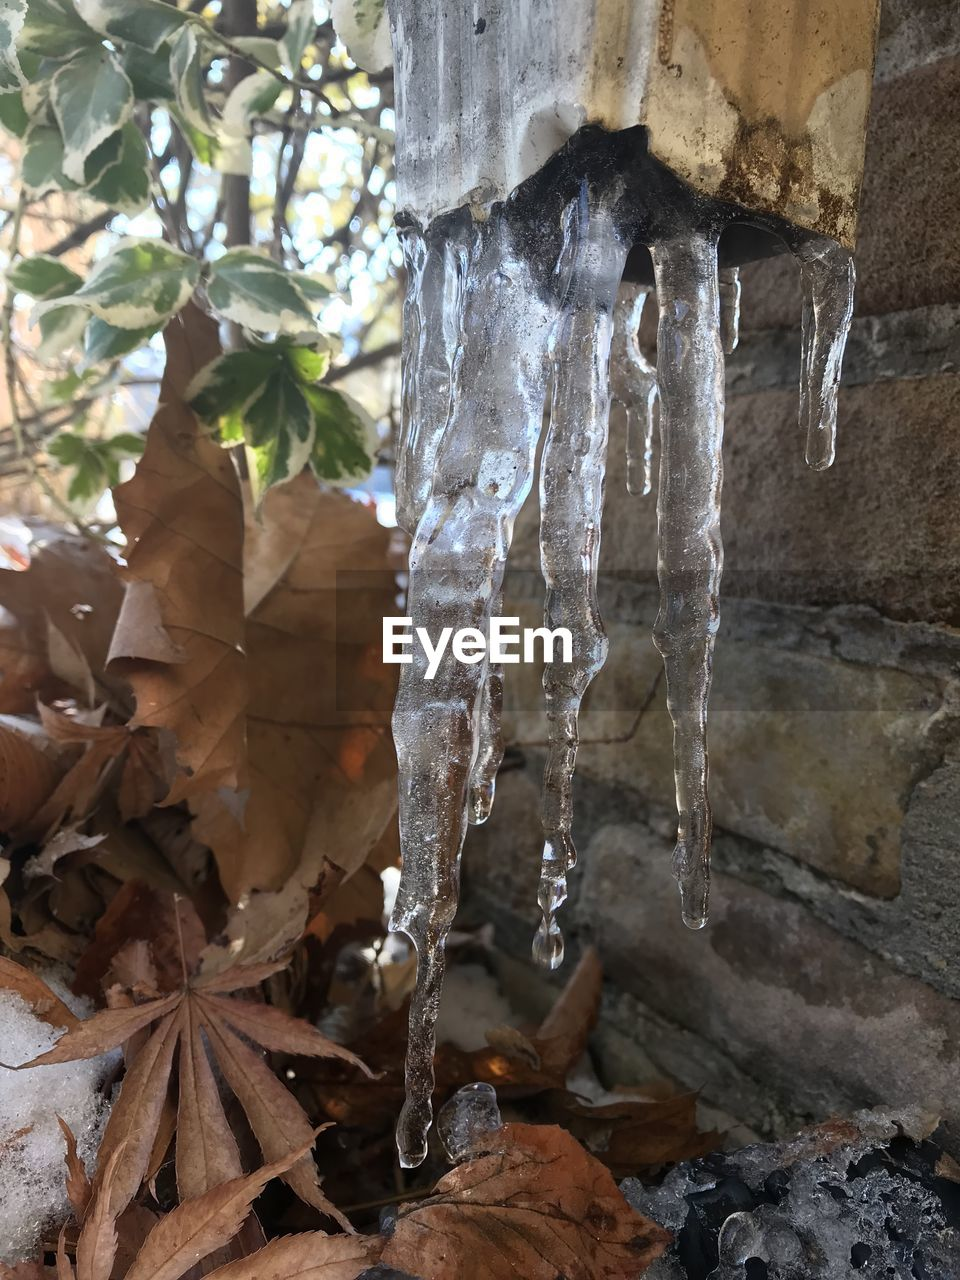 cold temperature, day, nature, no people, winter, ice, icicle, outdoors, leaf, low angle view, beauty in nature, close-up, water, freshness